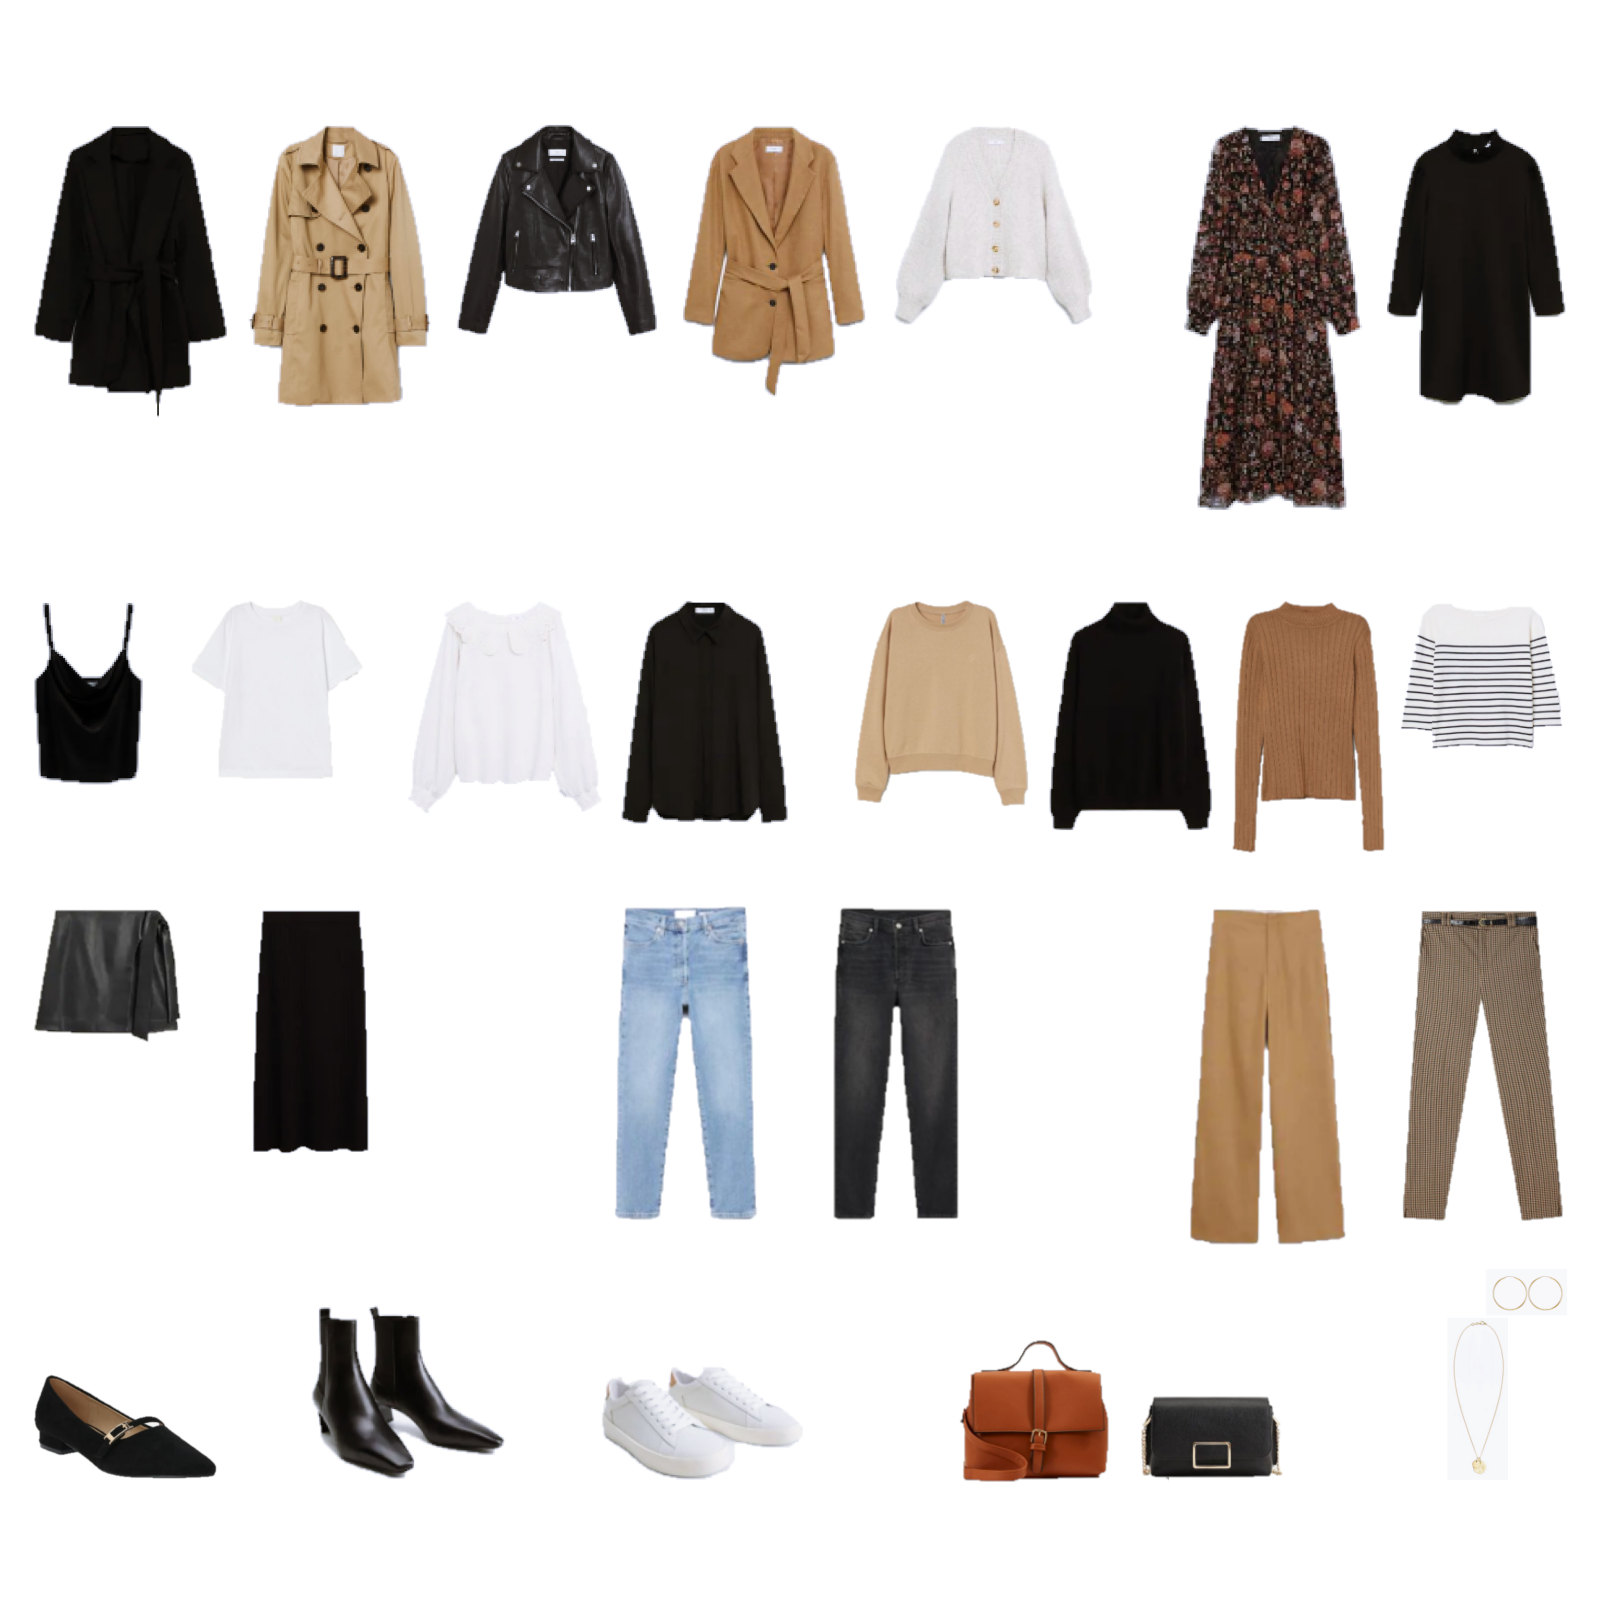 Autumn Capsule Wardrobe 2020